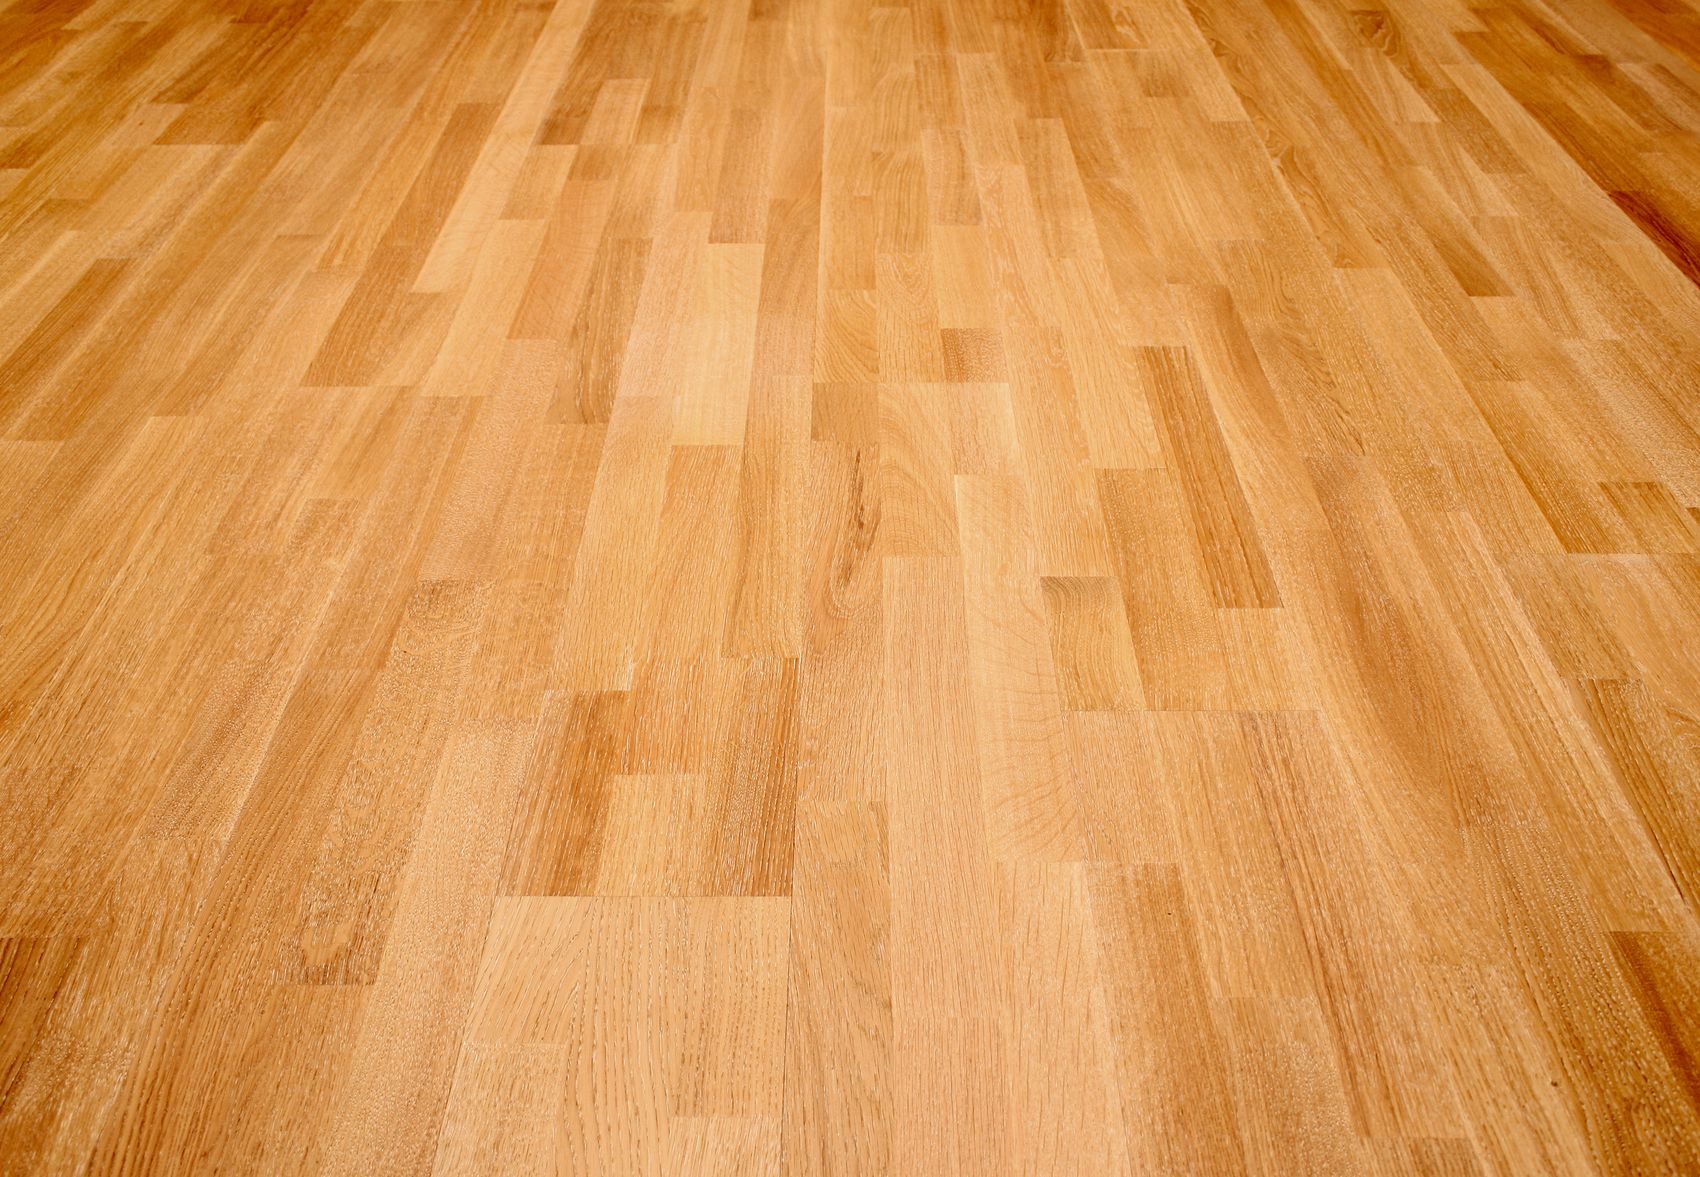 Hardwood Flooring Columbus In Columbus, OH | Traditional Hardwood Floors Refinishing Hardwood Floors